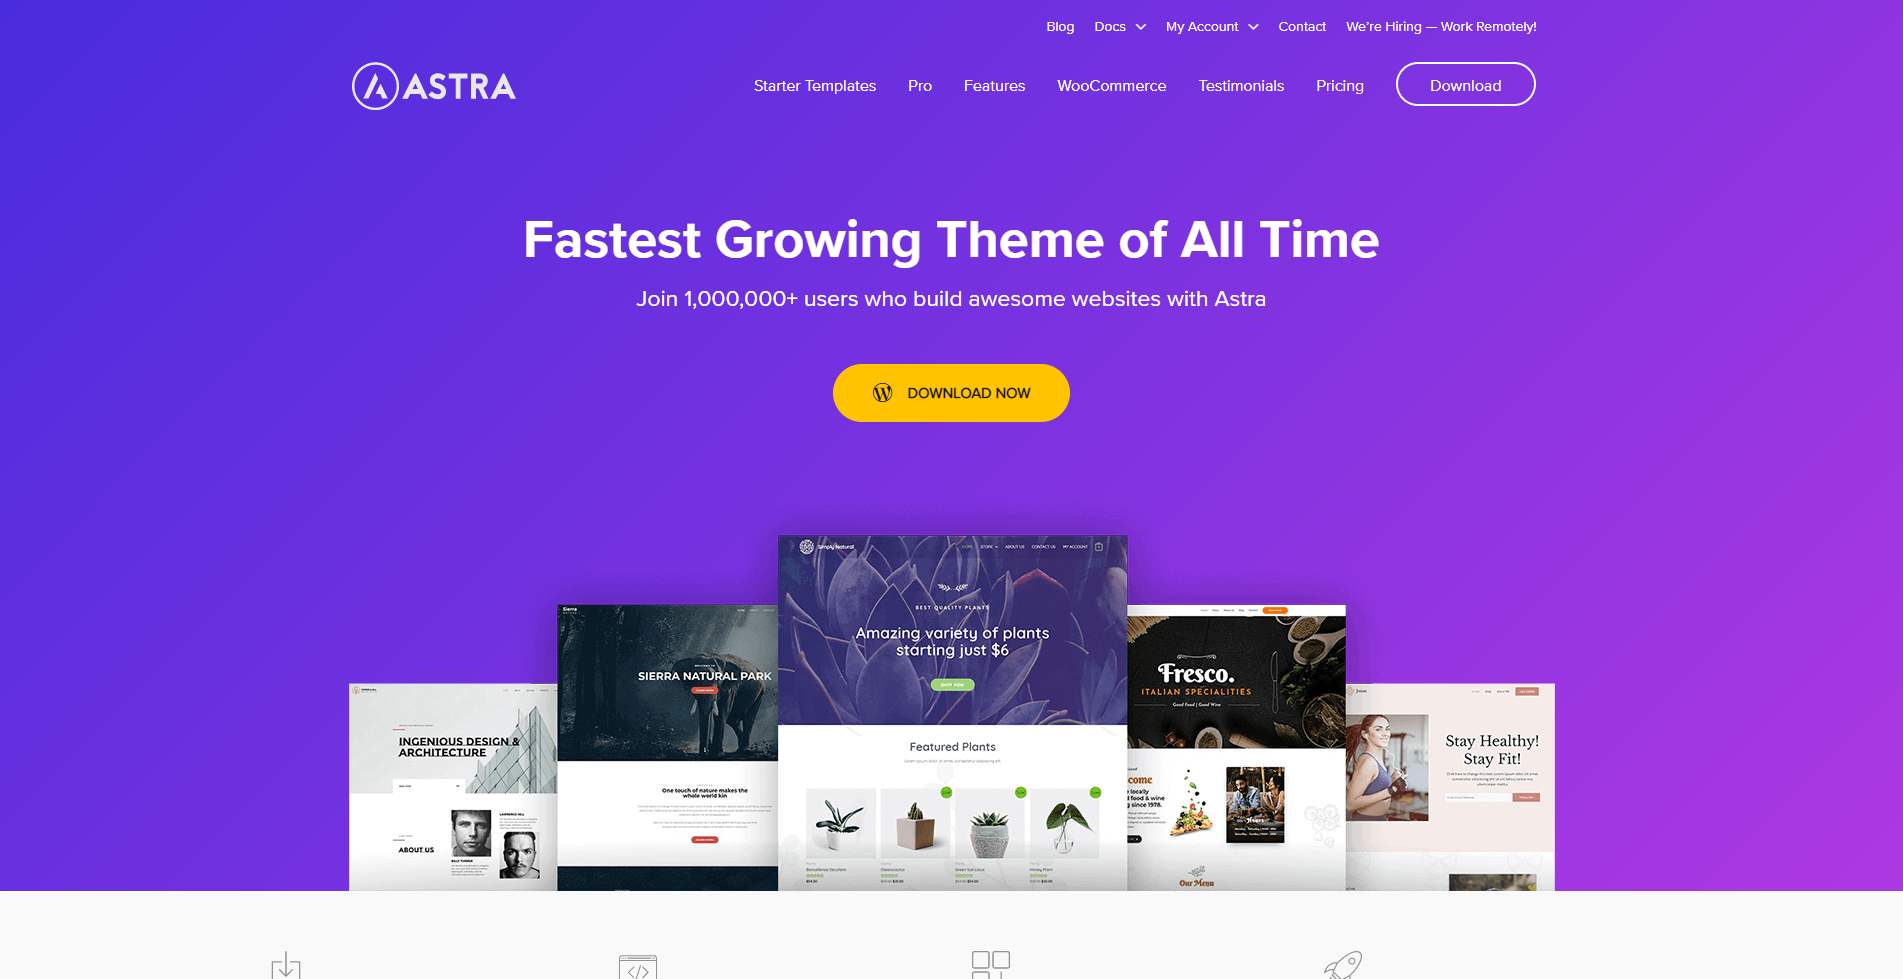 Astra homepage